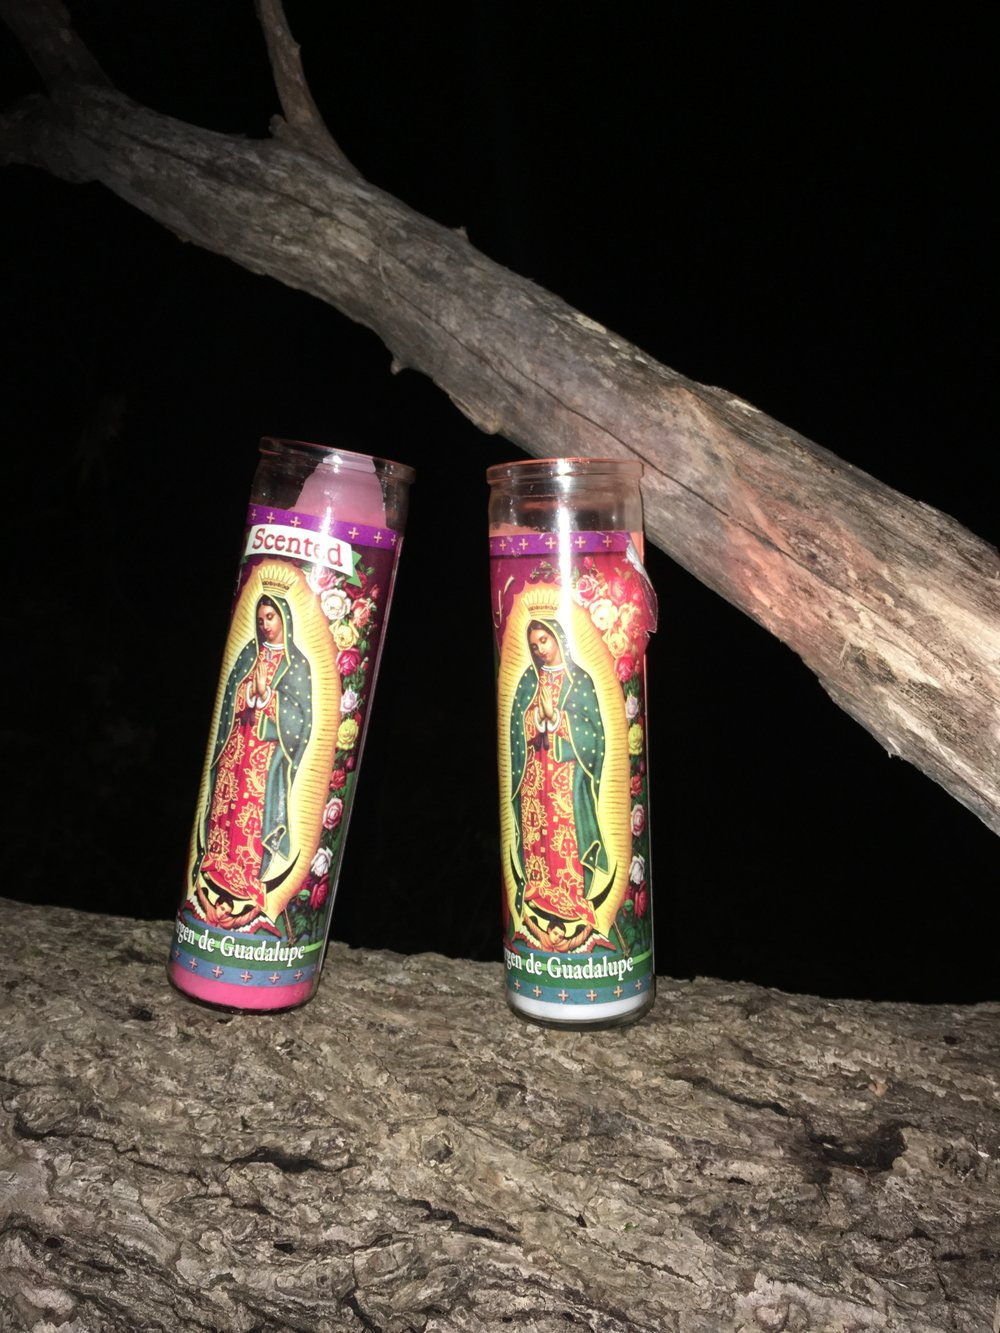 She brought two Lady Guadalupe candles.